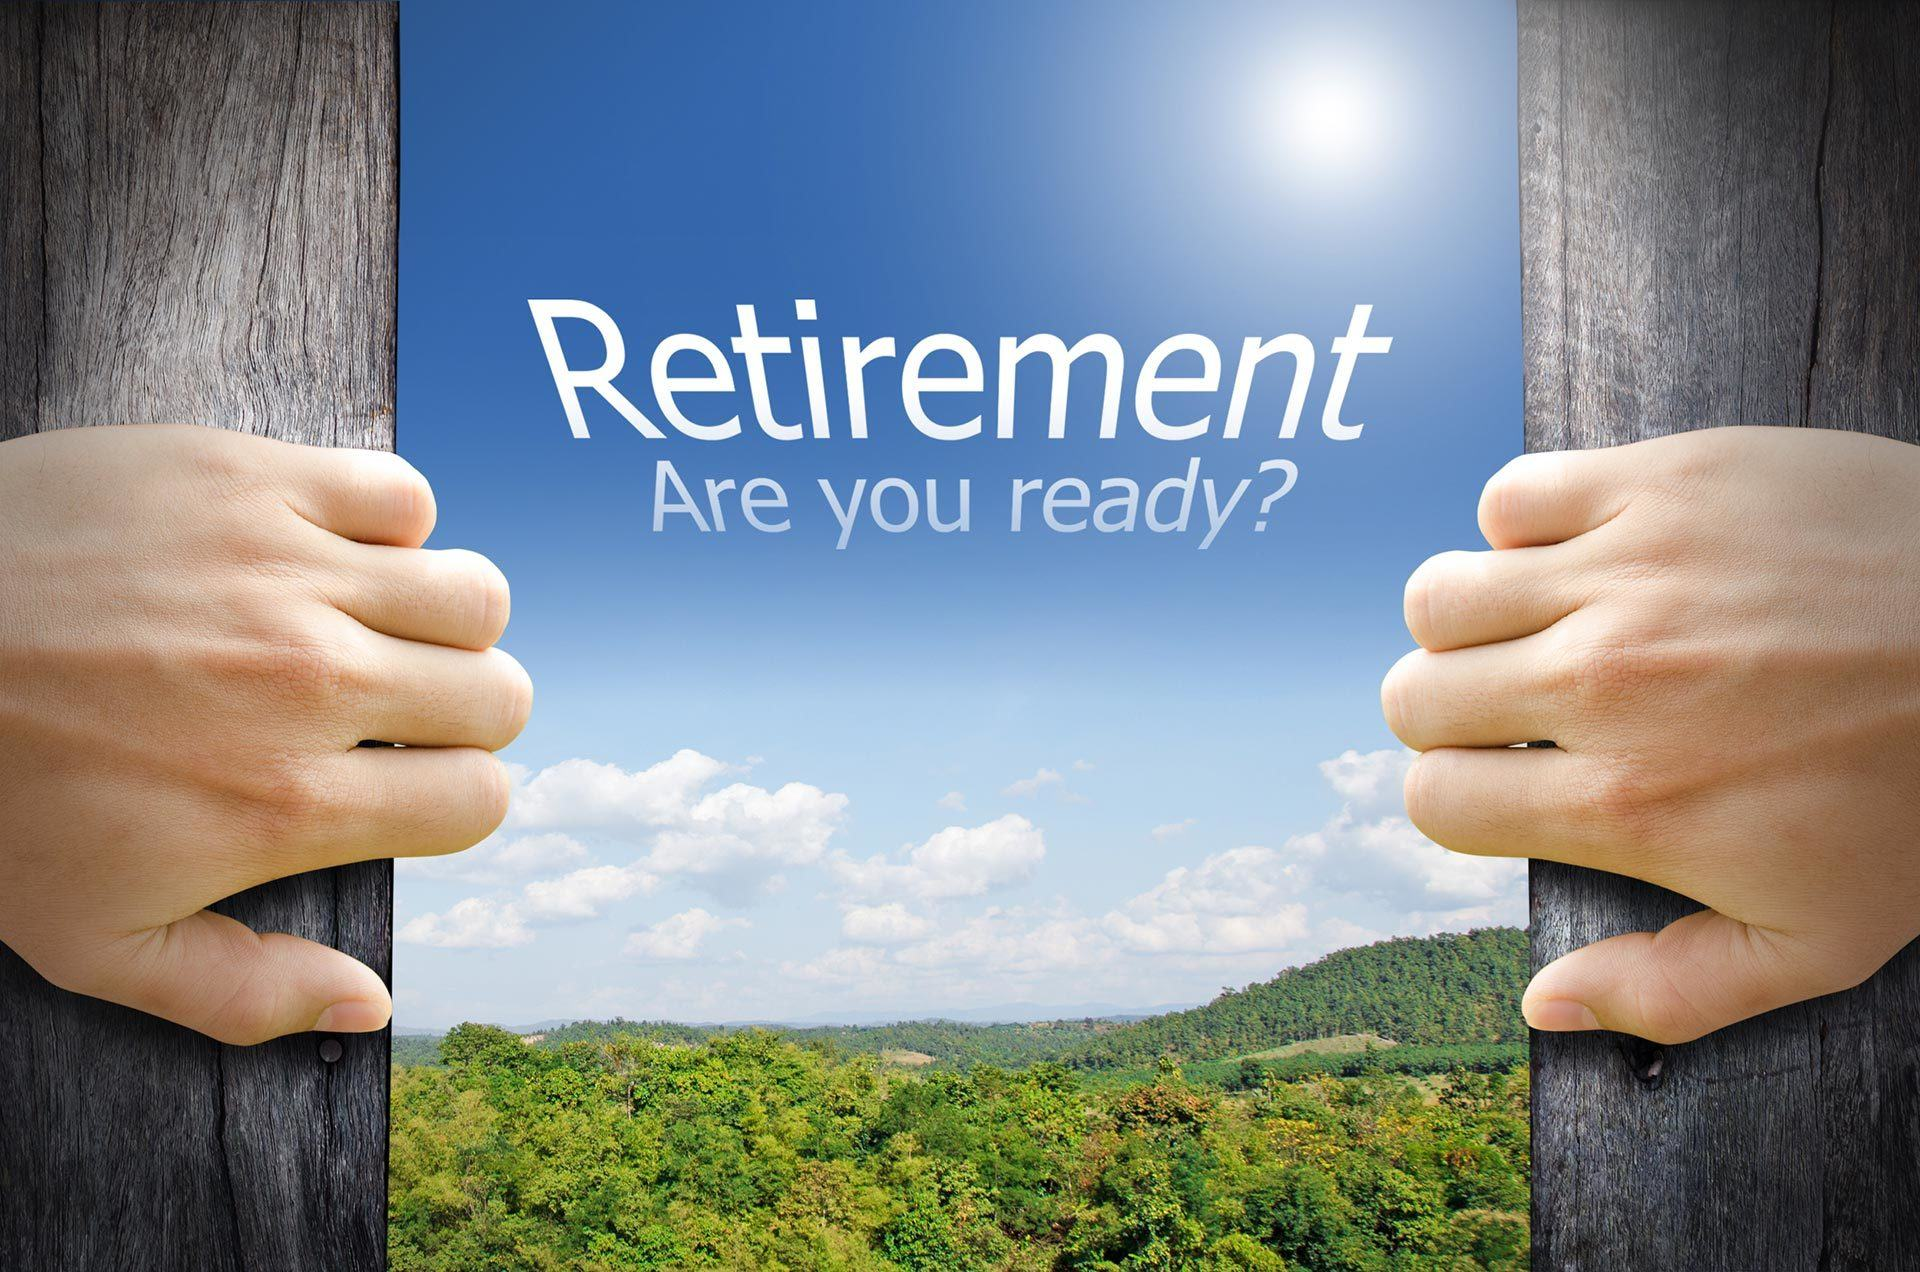 5 Retirement Plans That Will Make You Much Happier - Legal ...